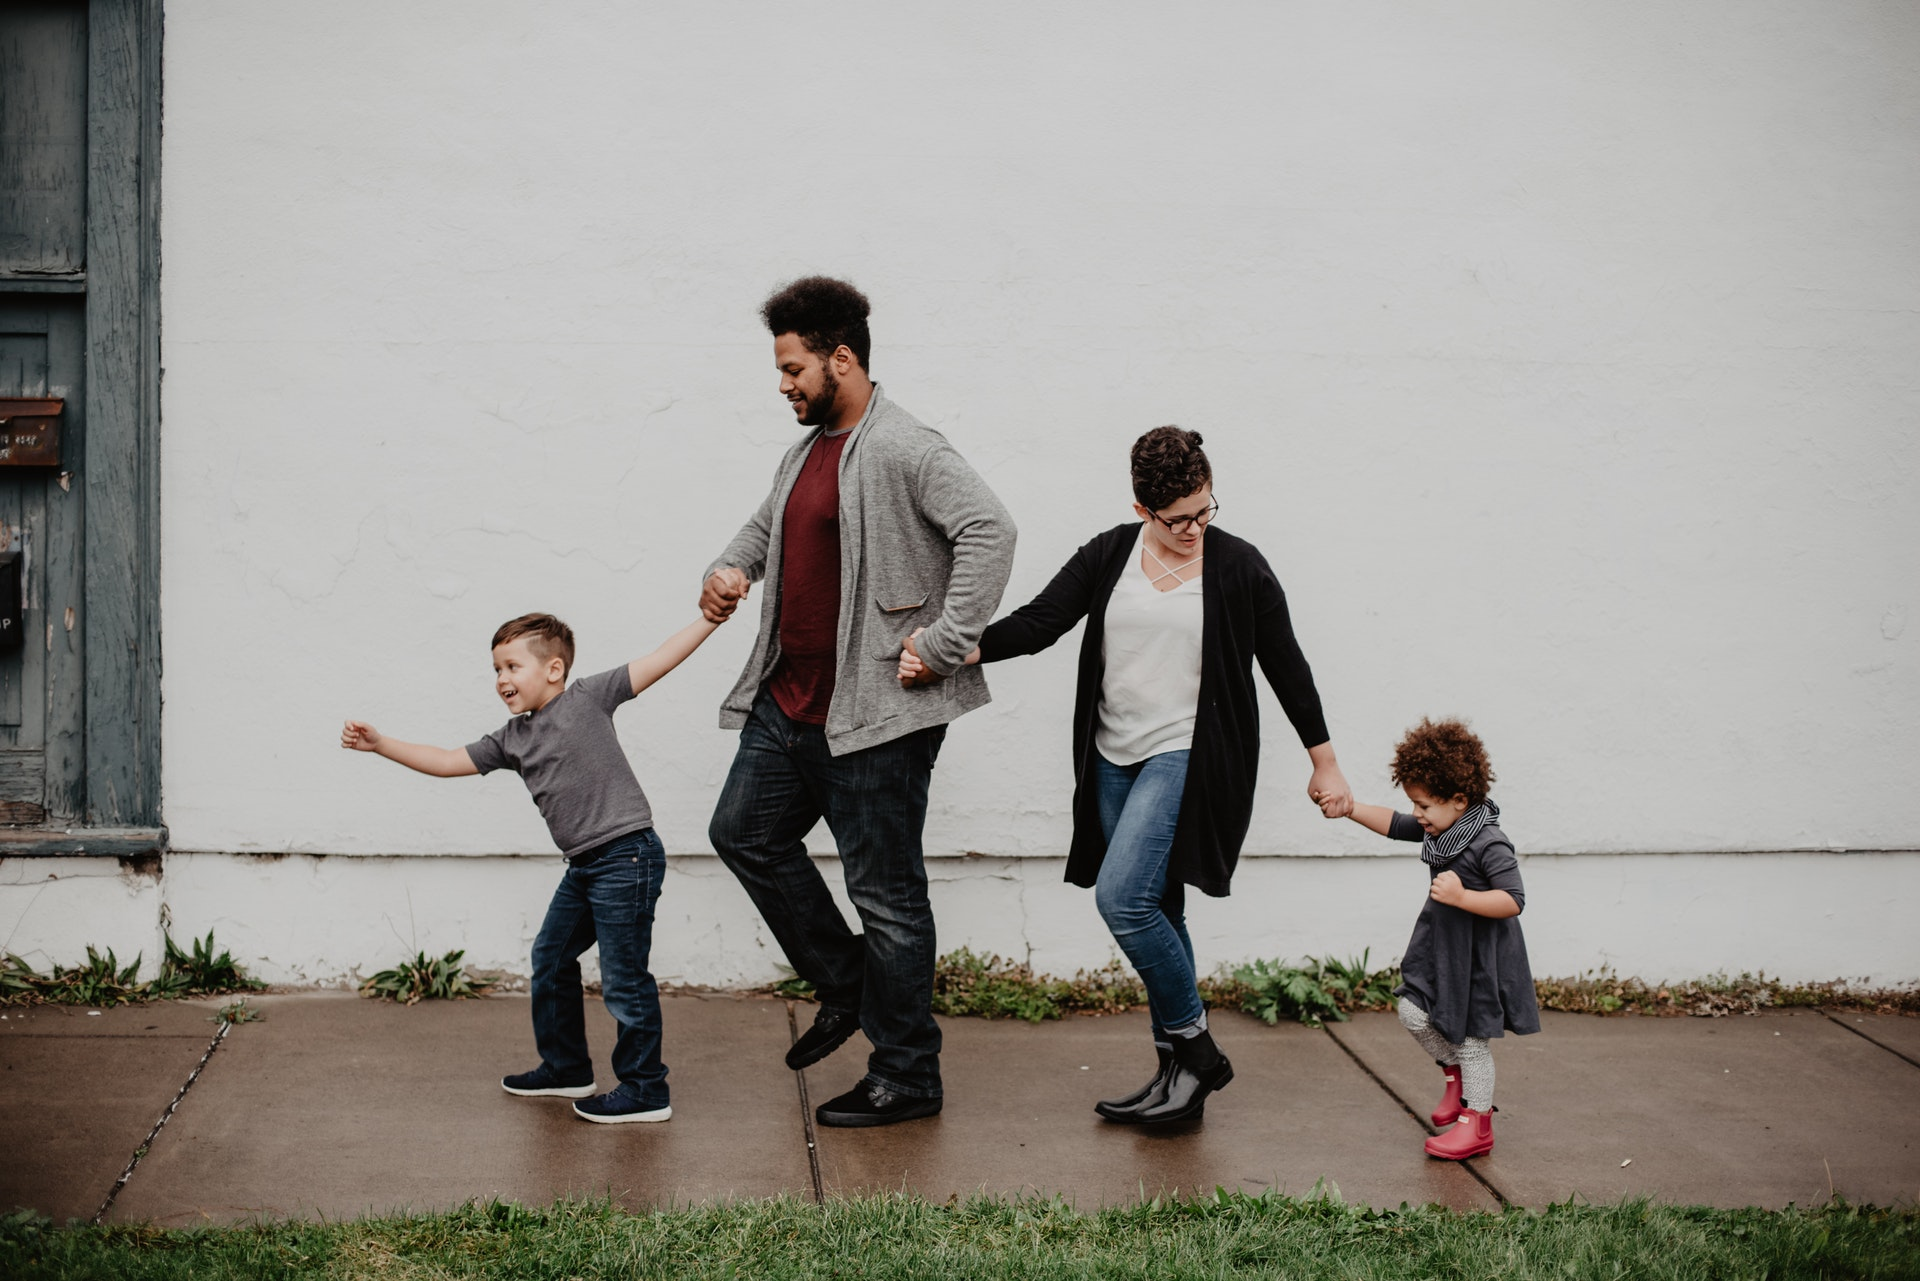 Family of four walking down the street holding hands and smiling